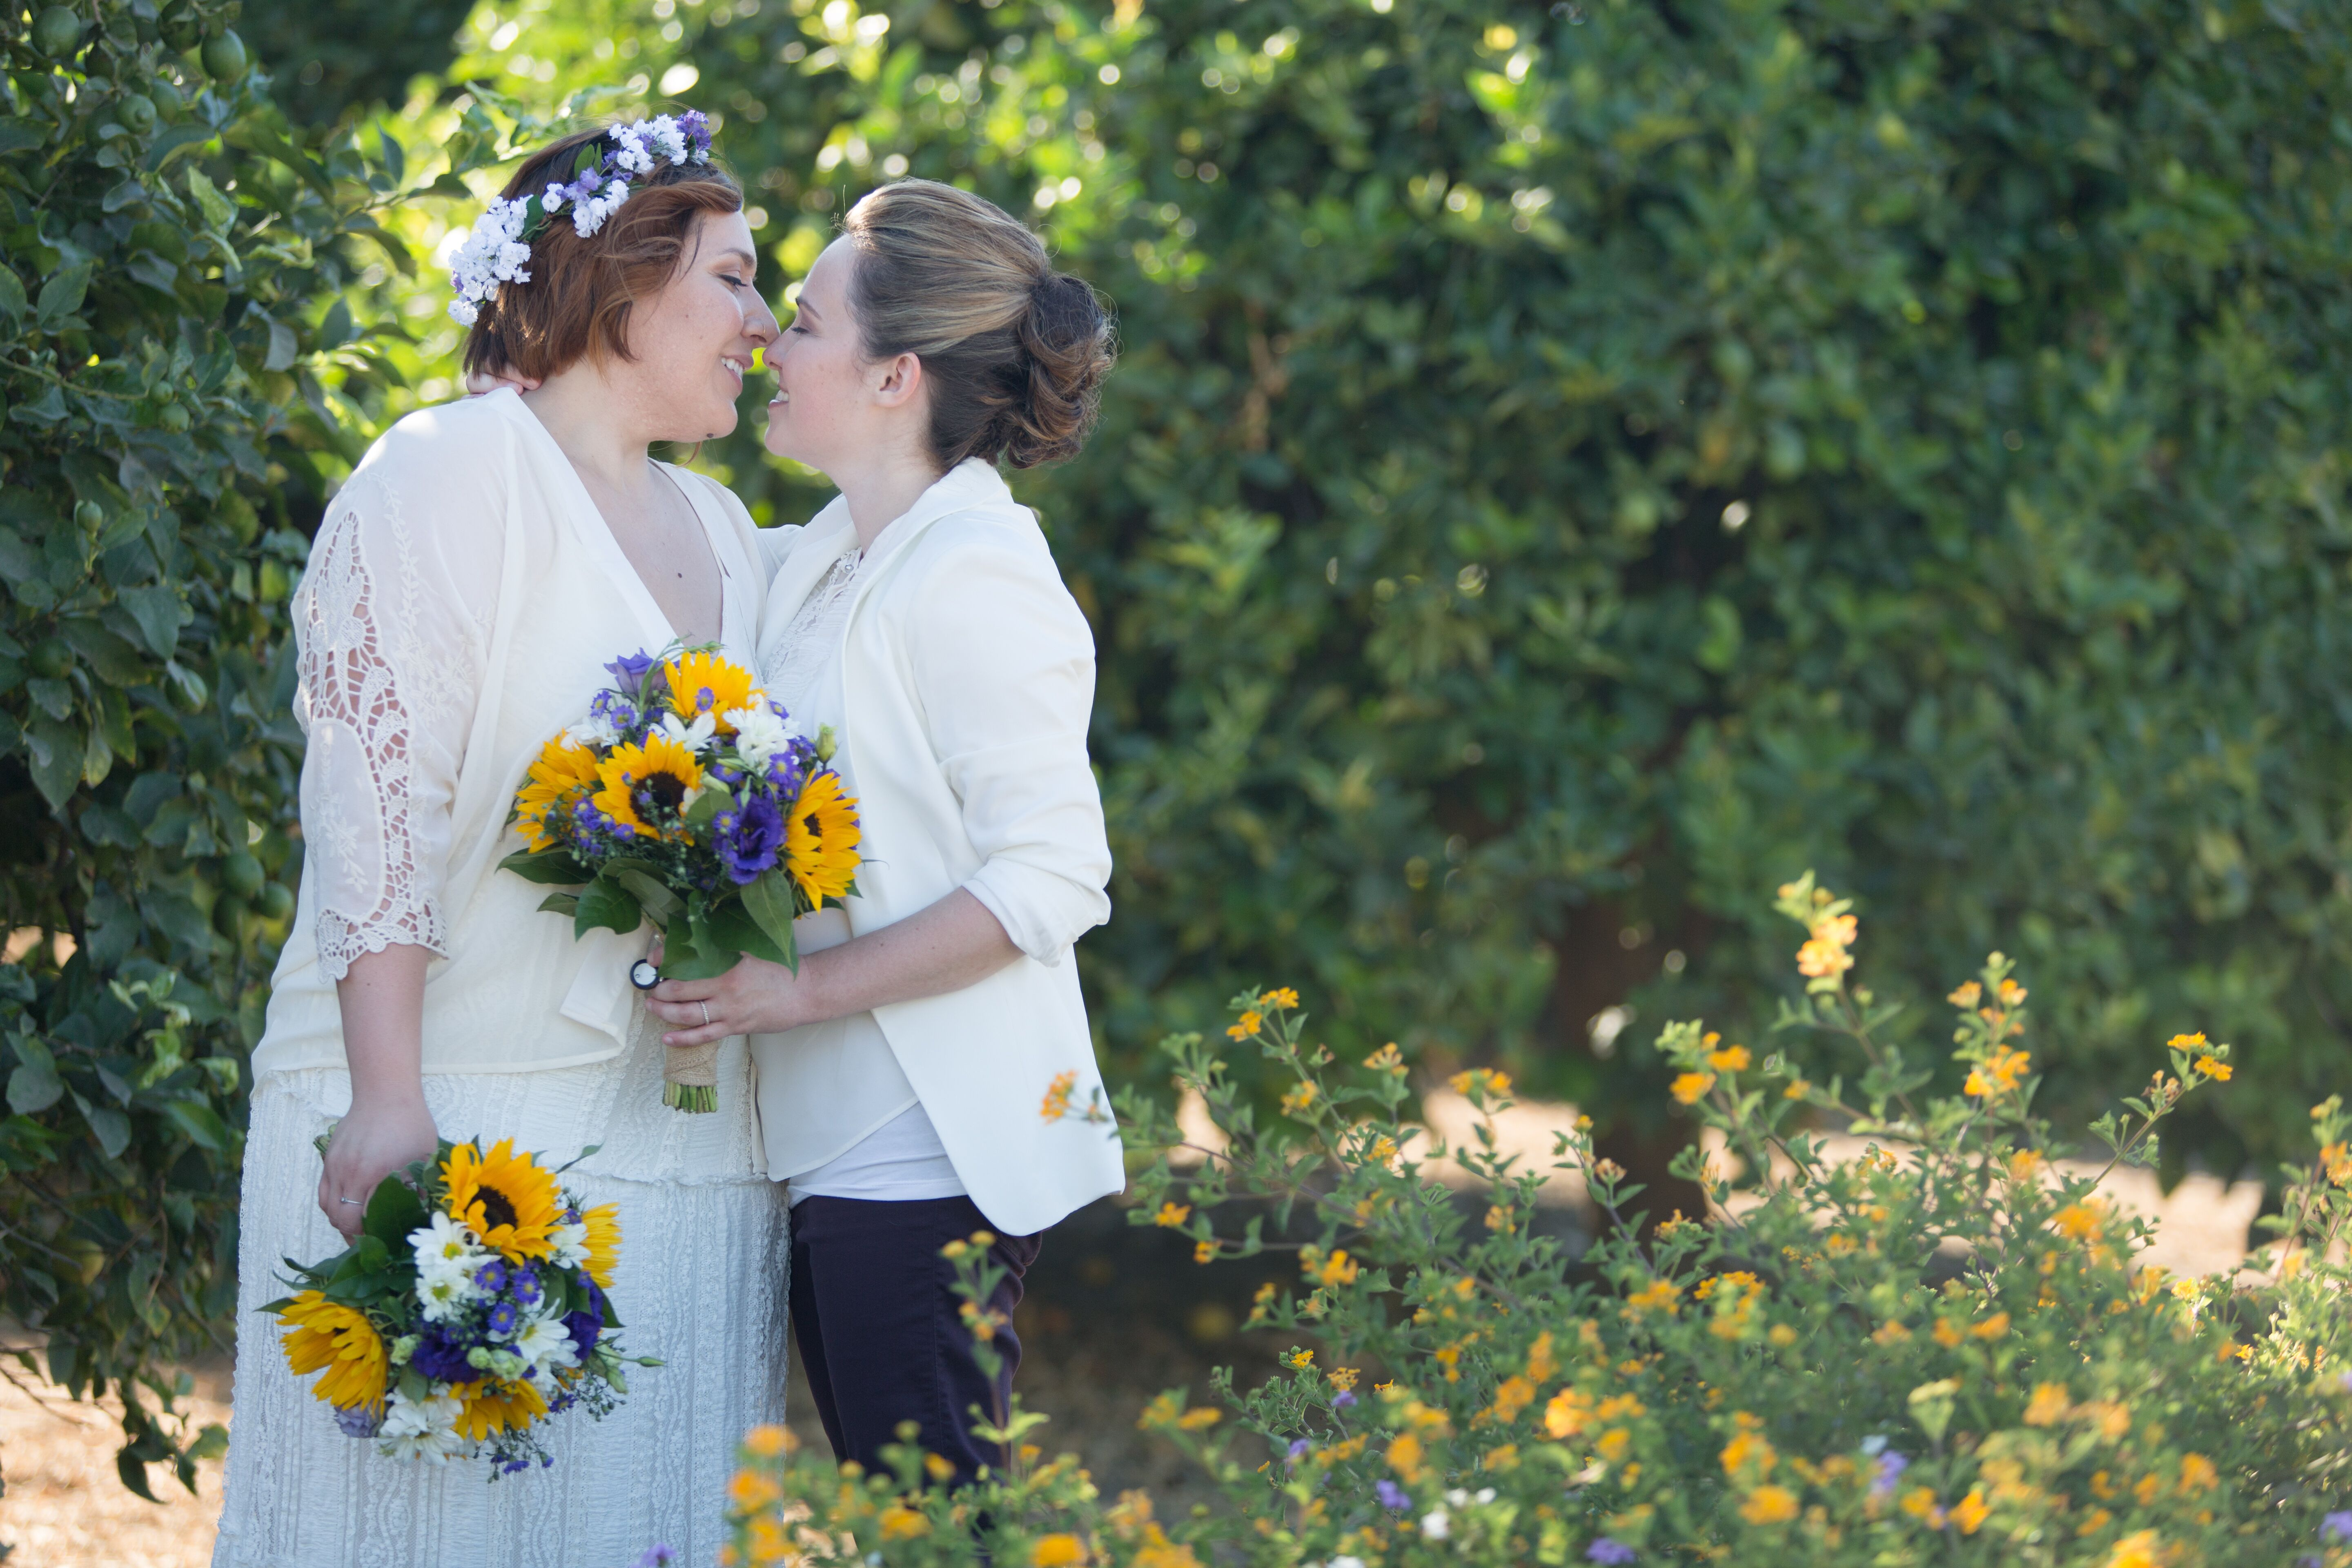 A Simple Rustic Wedding At Limoneira Ranch In Santa Paula